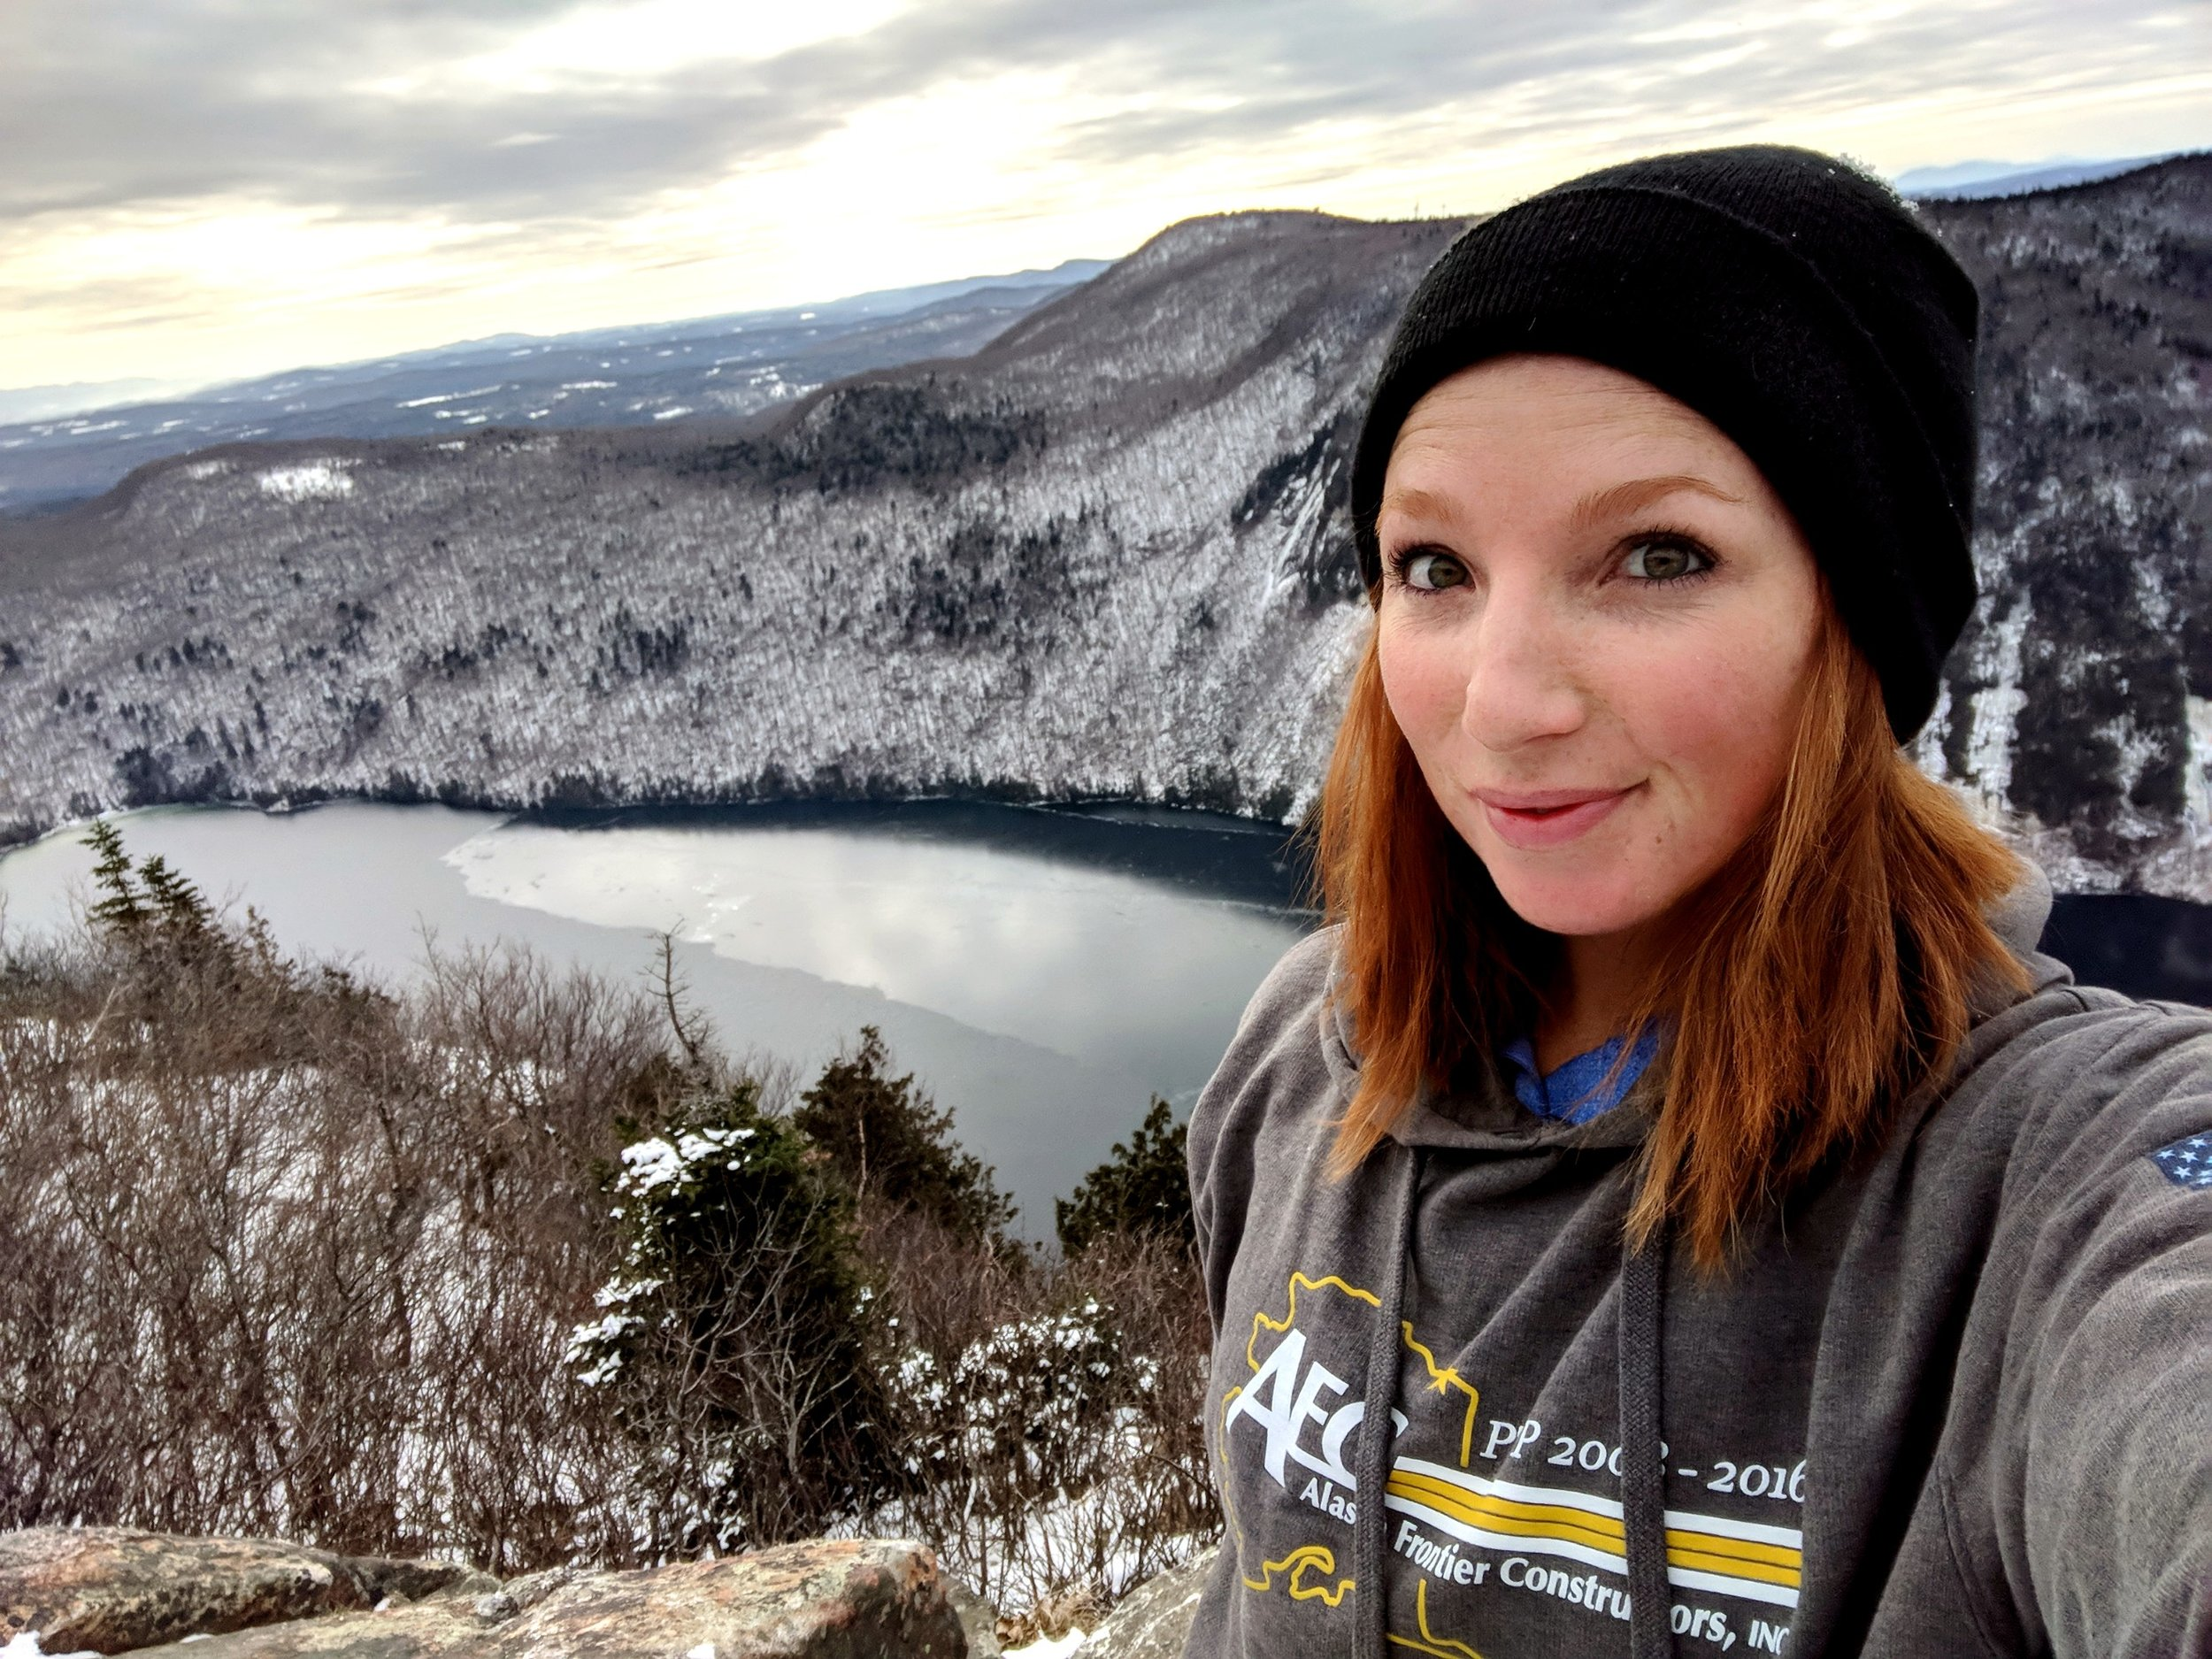 Kristen Gonyaw @ginger_gon_trailin  Kristen is a 27 year old Vermonter who's love for distance started while competing her horses in 50-100 mile endurance races. She completed her first ultra after moving to Central Pennsylvania in 2016 and she hasn't stopped running since. Even though challenging, she enjoys balancing time between herself and her horses which means when she's not running, she's riding! This year she plans to return to her home state to attempt her first Vermont 100. Her goal is to one day be as badass as her horse.